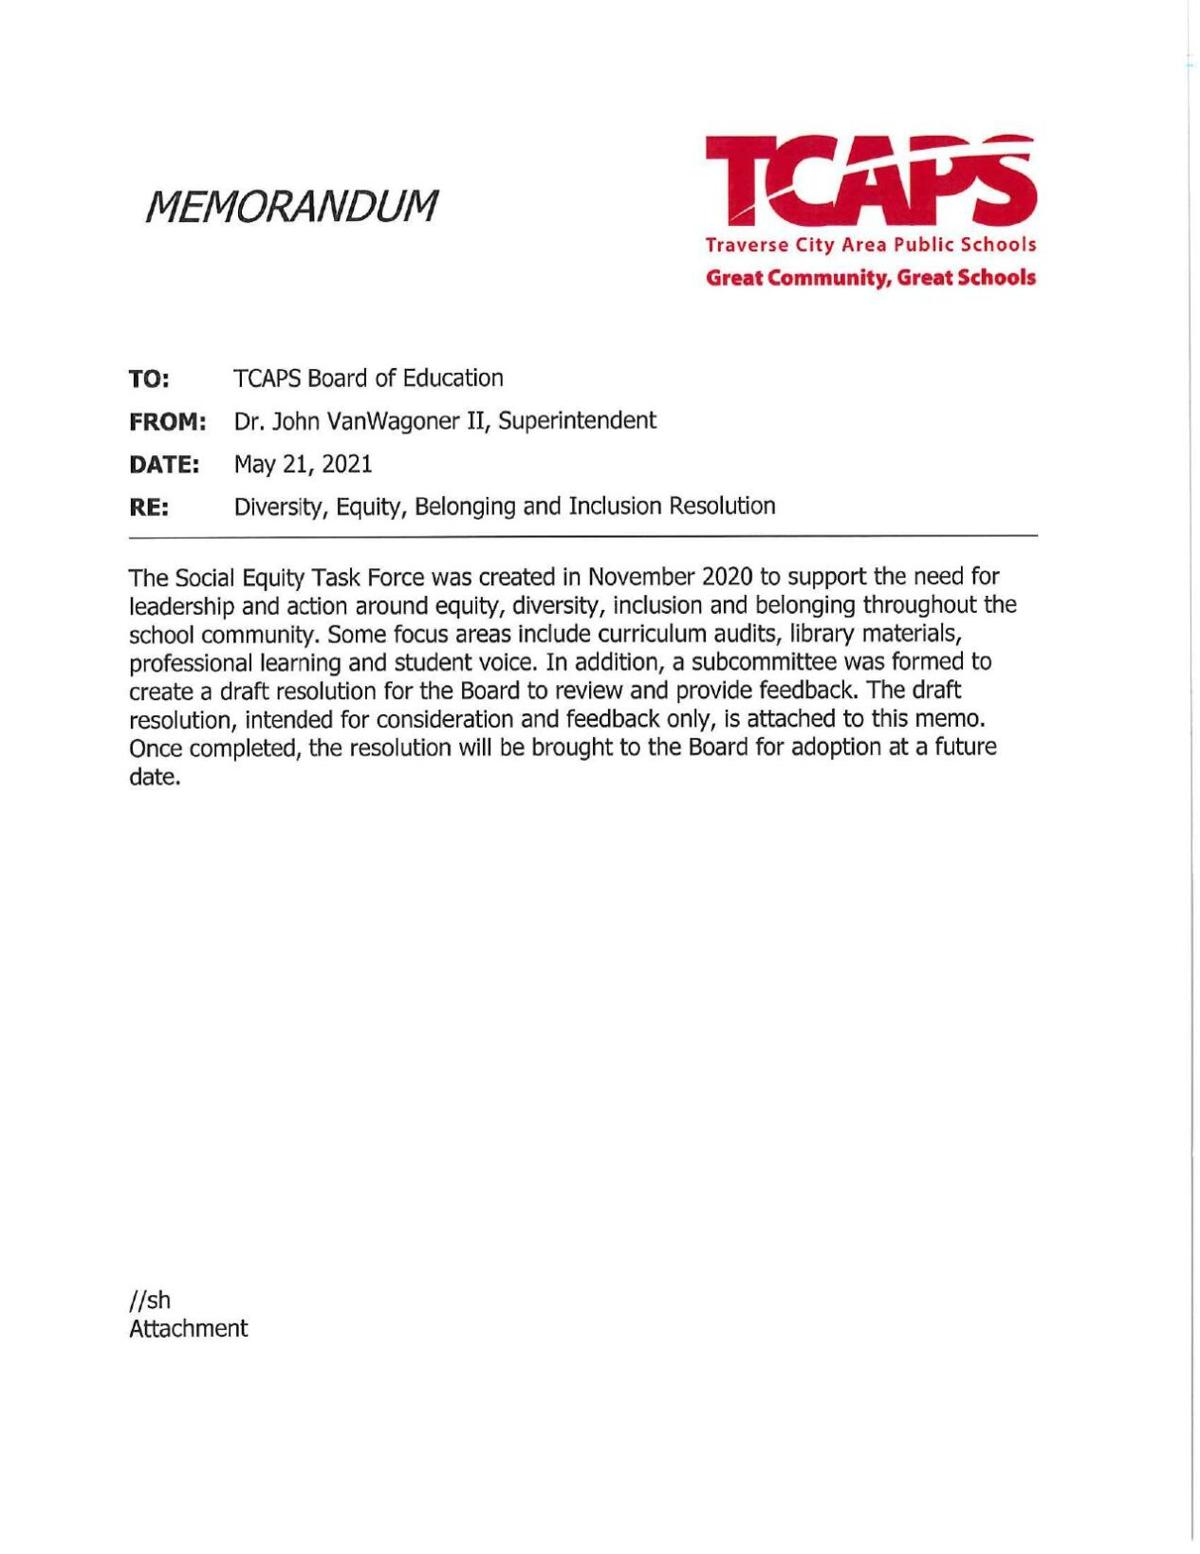 TCAPS Equity Resolution Draft 1